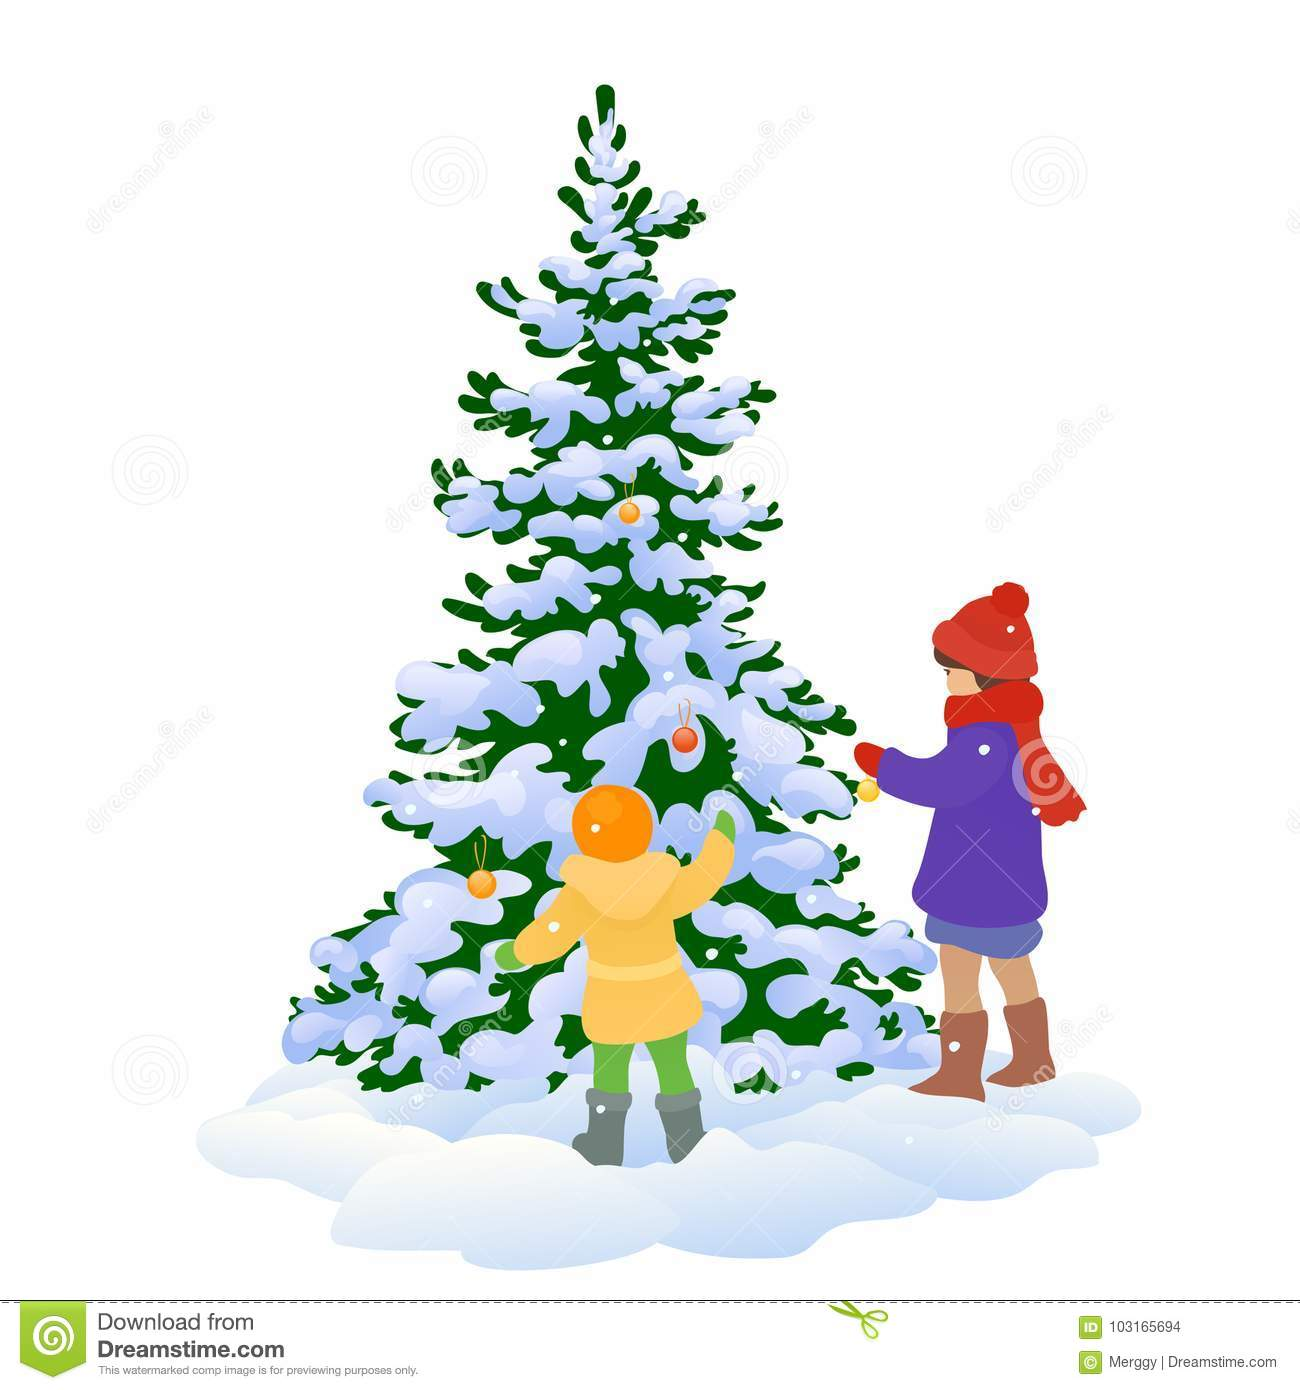 Kids And Xmas Tree Stock Vector Illustration Of Element 103165694